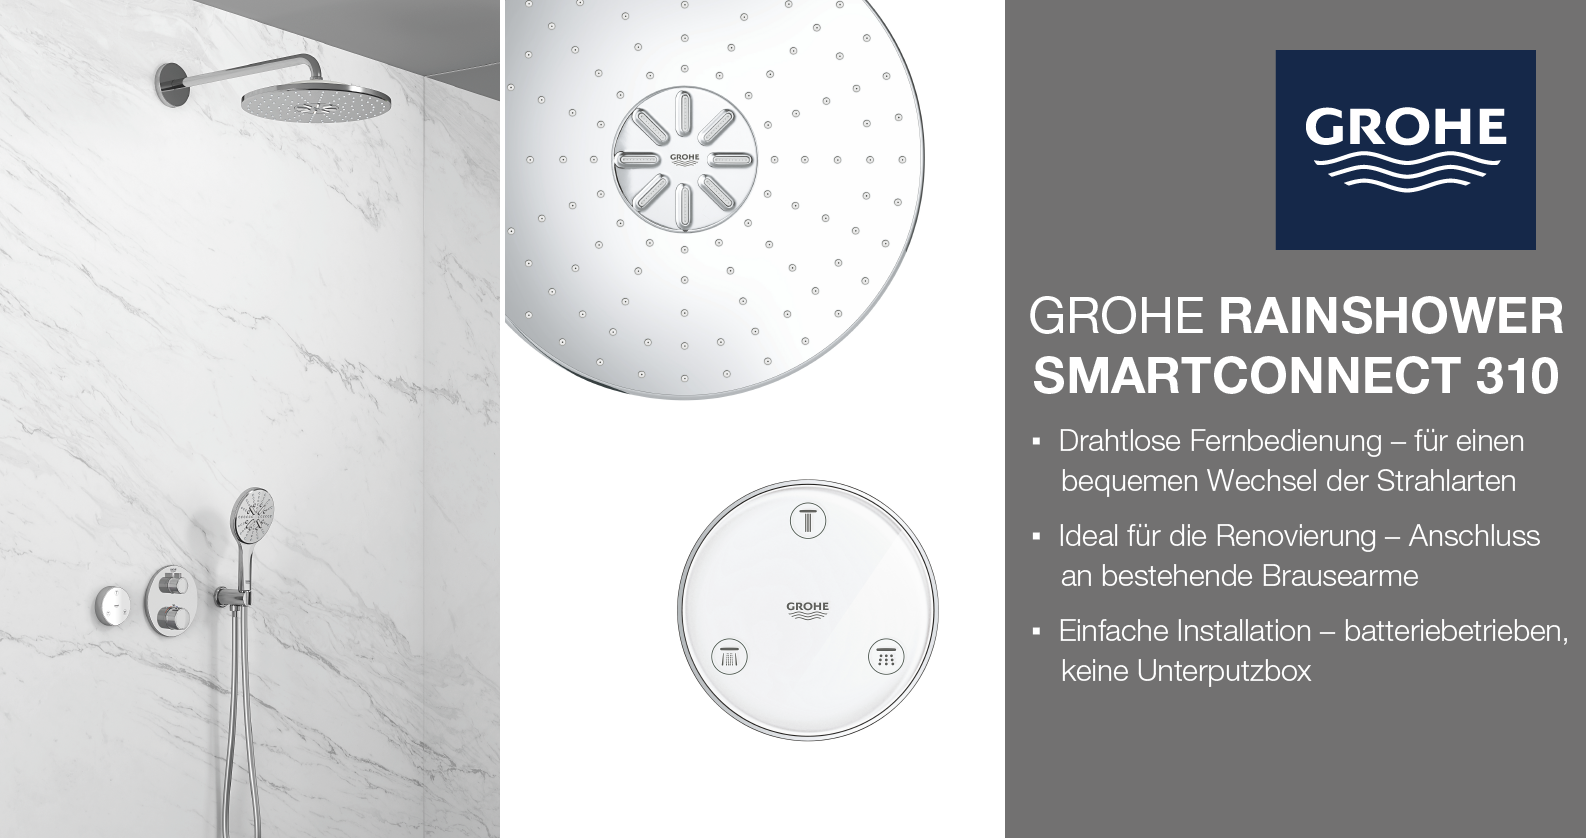 GROHE Rainshower SmartConnect at xTWOstore